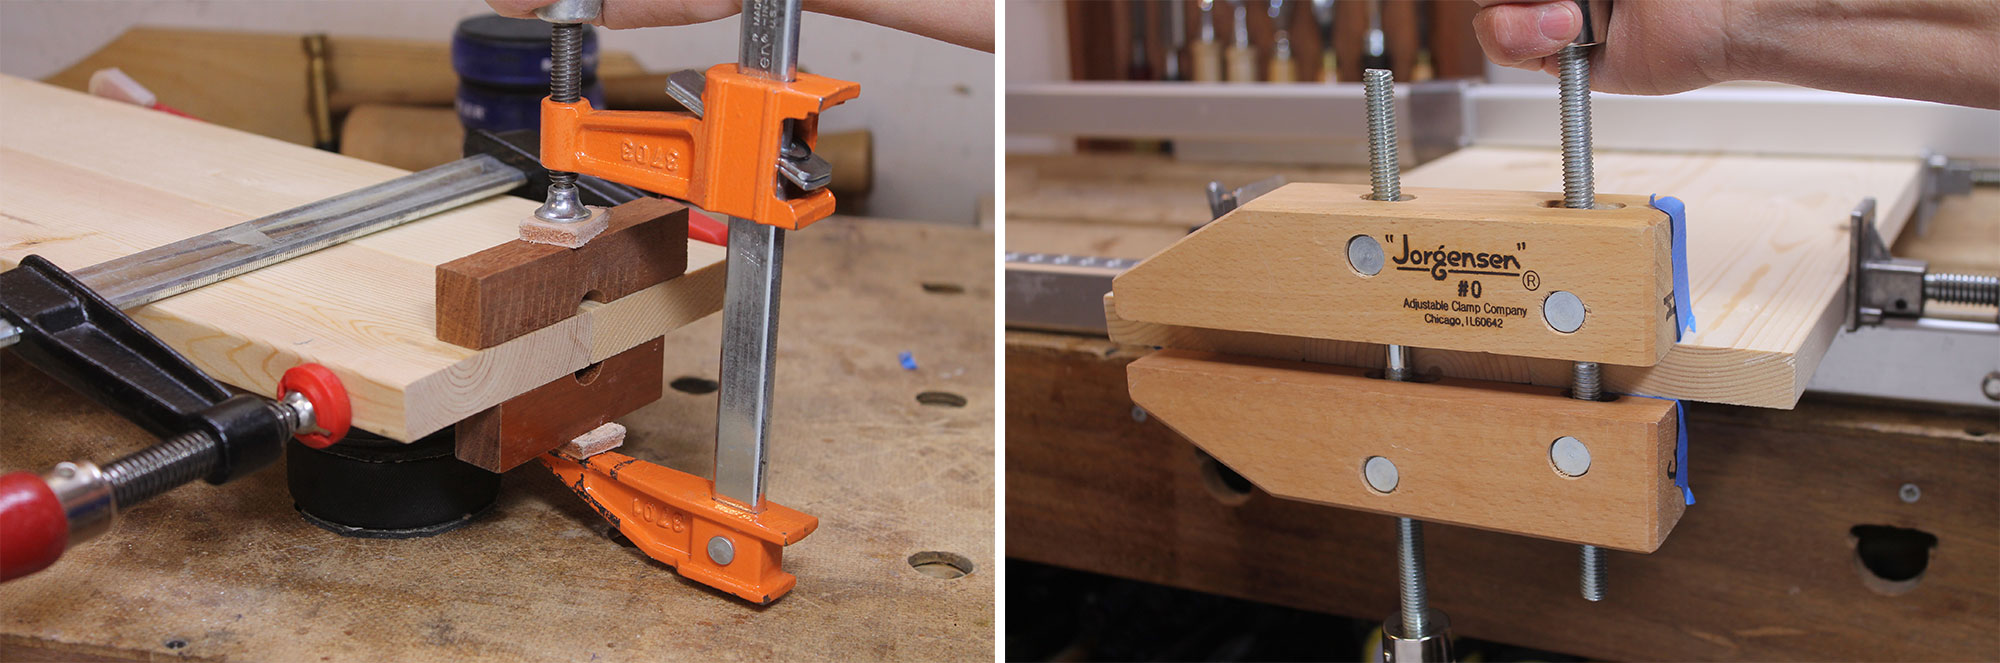 Image left: Using notched blocks to flush up the boards at the outer ends of each joint. Image right: Tape prevents glue from marring the handscrew.